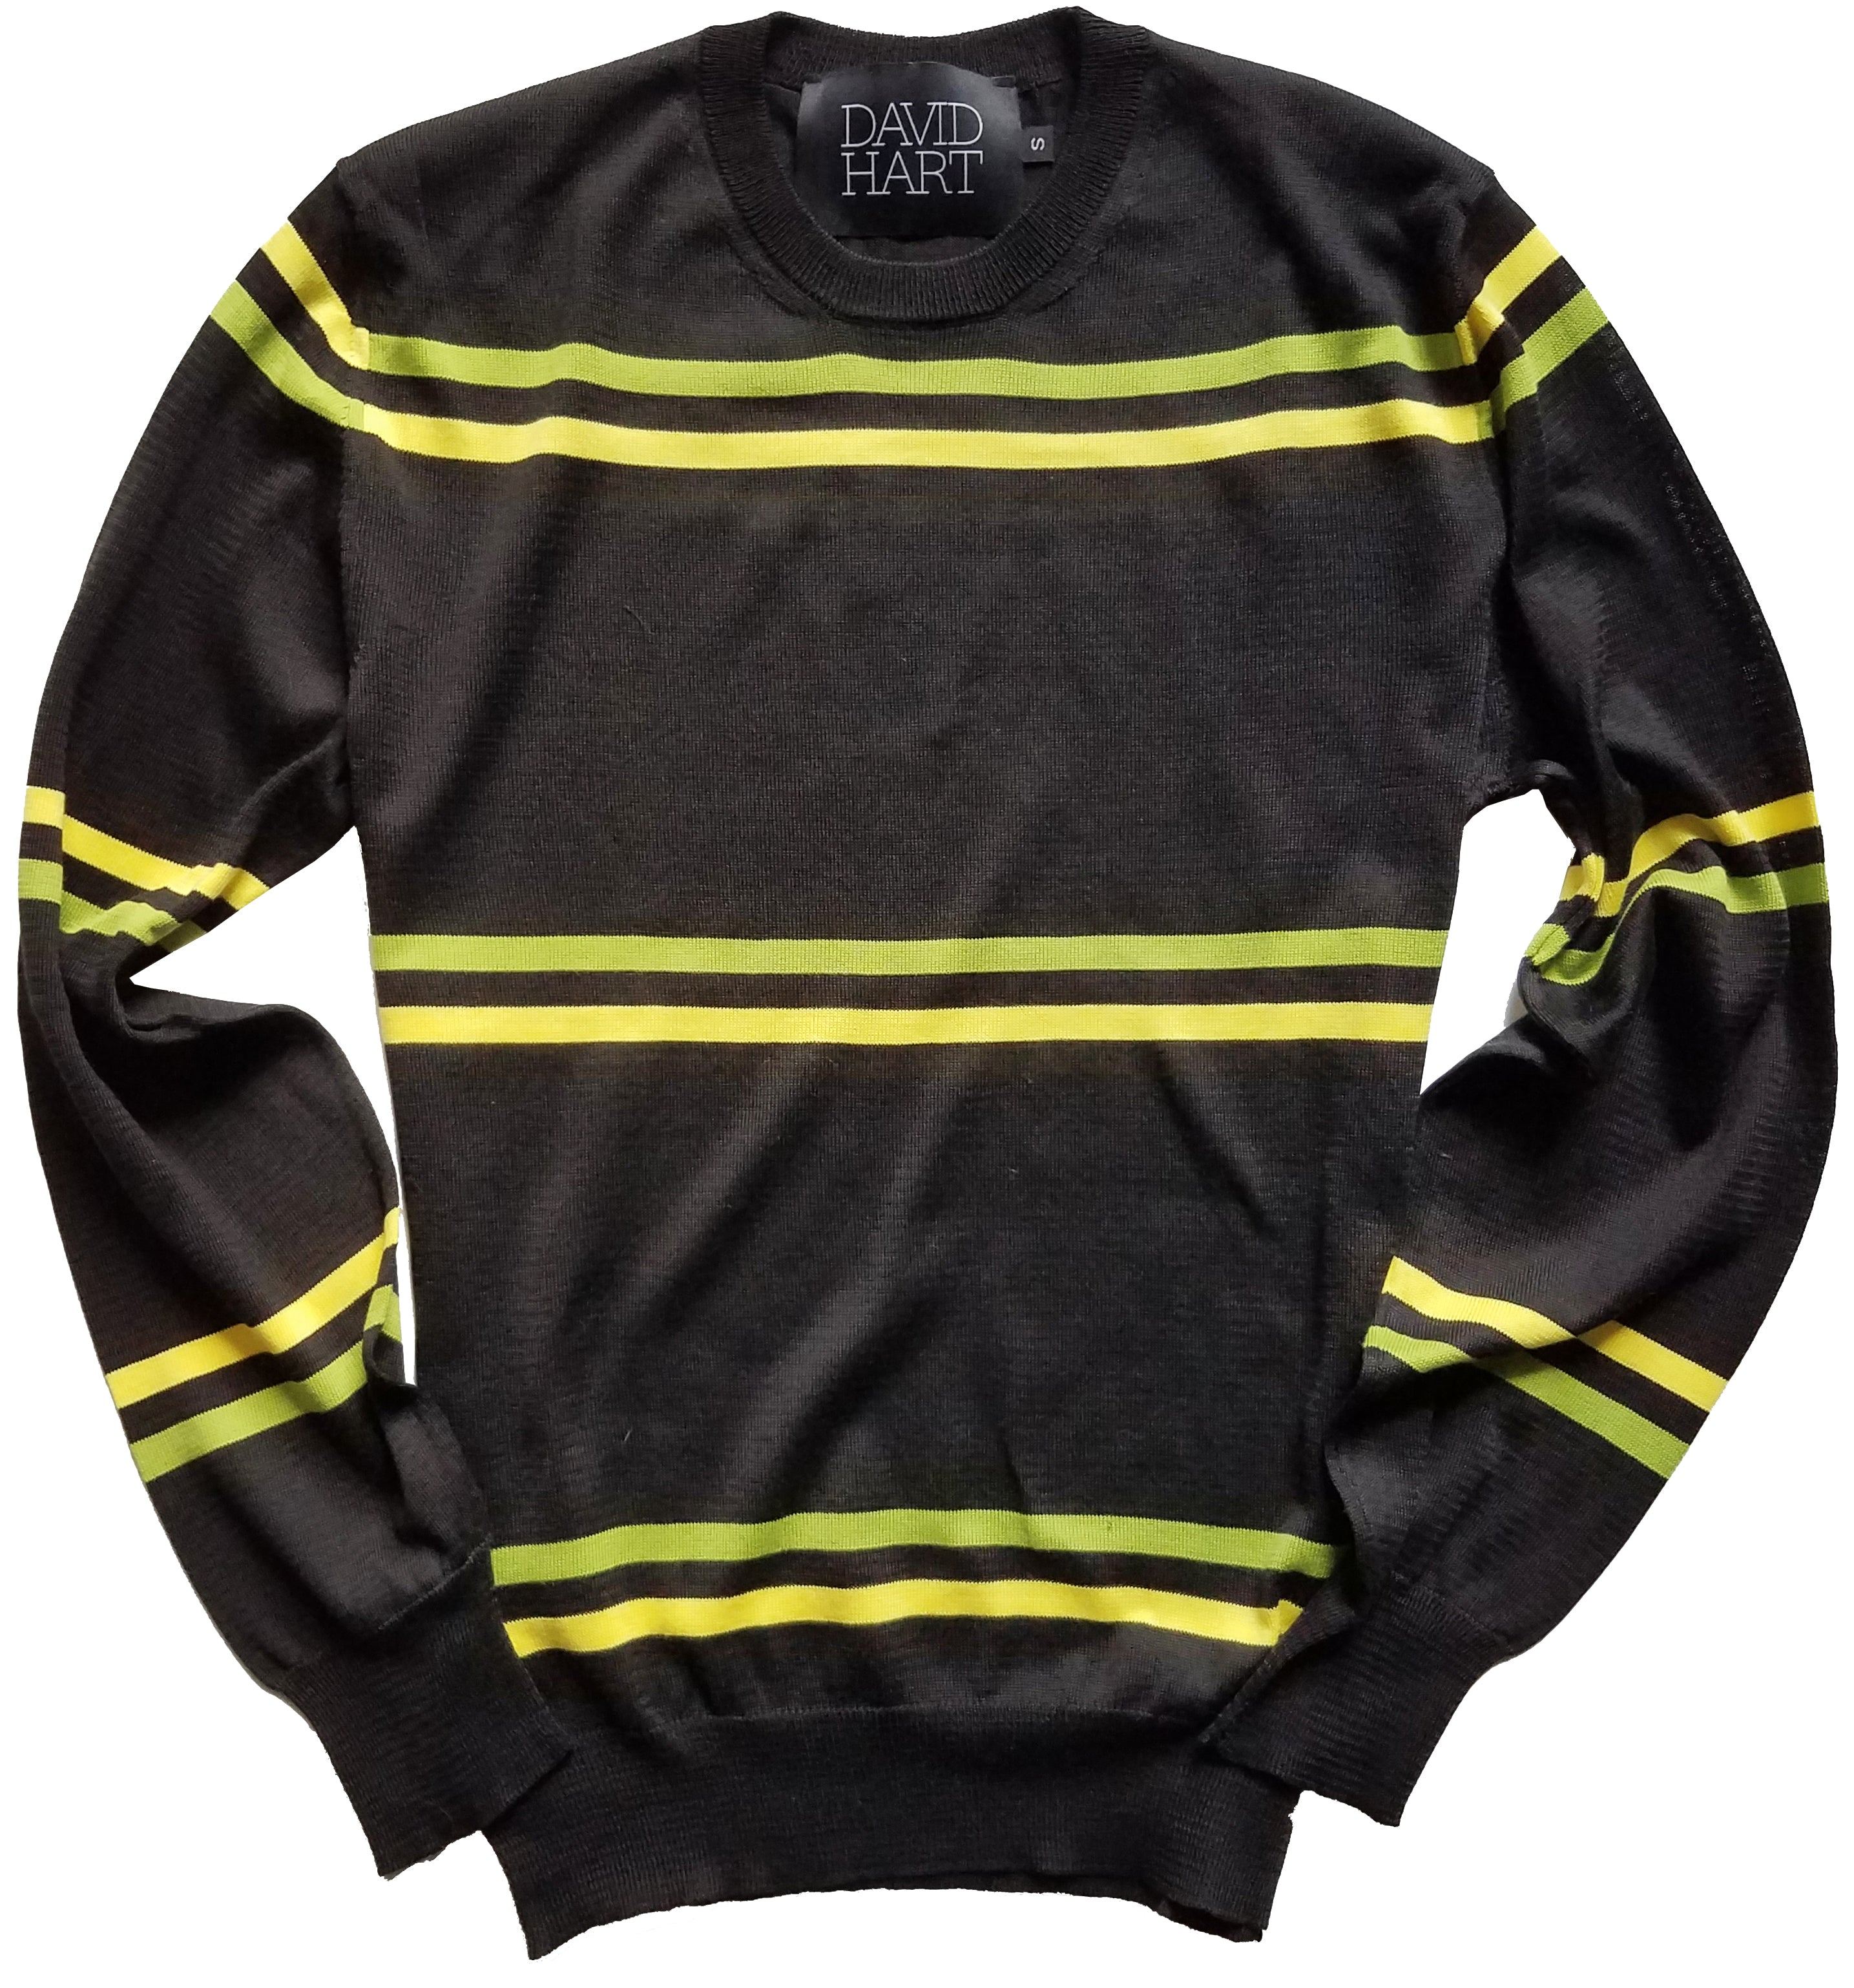 black crew neck sweater with green and yellow stripes